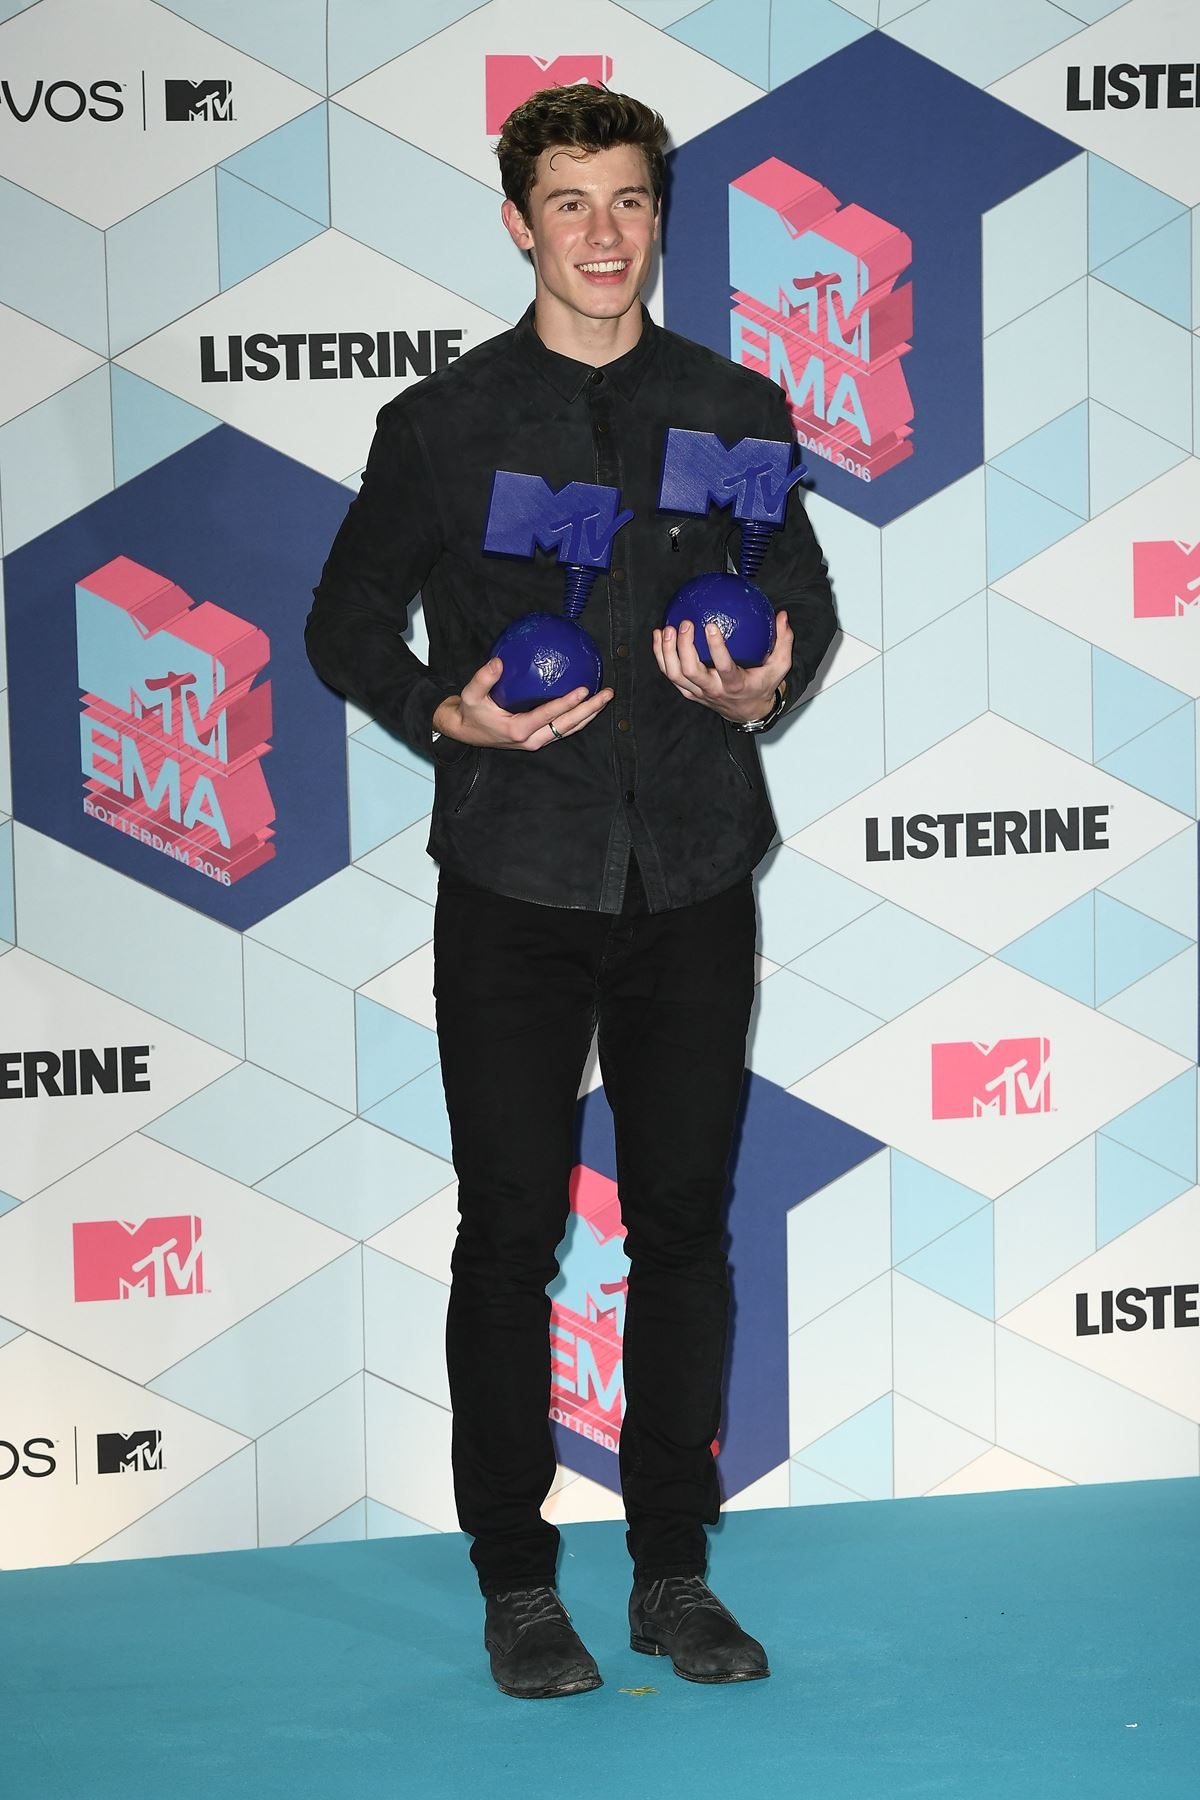 YAS BOY! Shawn Mendes totally cleaned up.